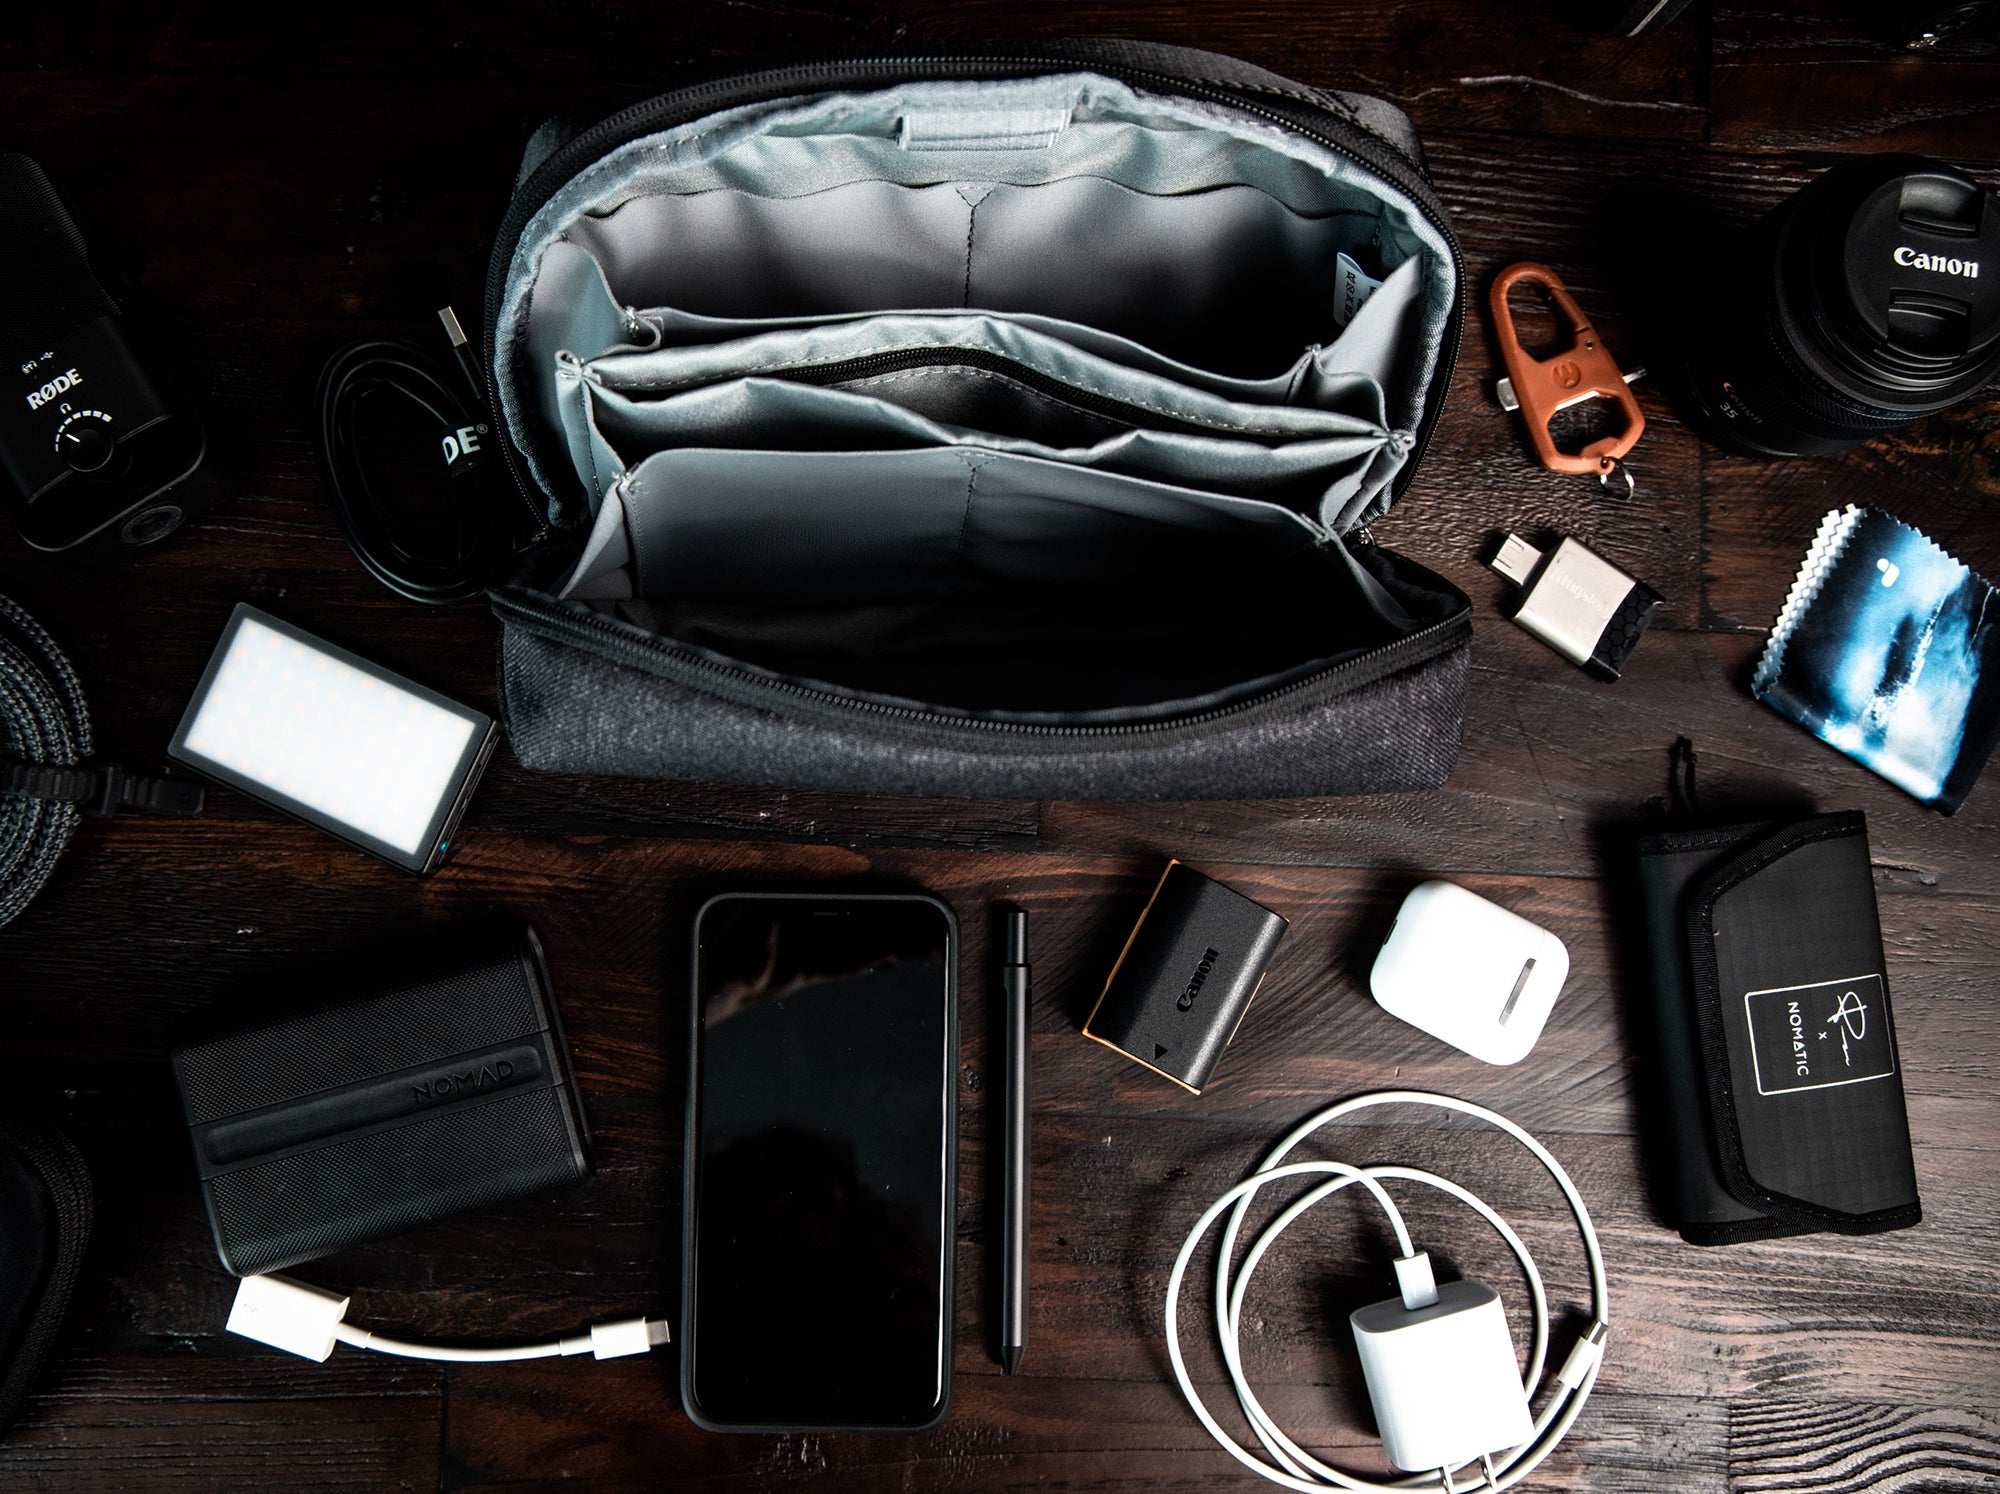 camera, phone, charger, flash drive, and camera bag on a wooden table